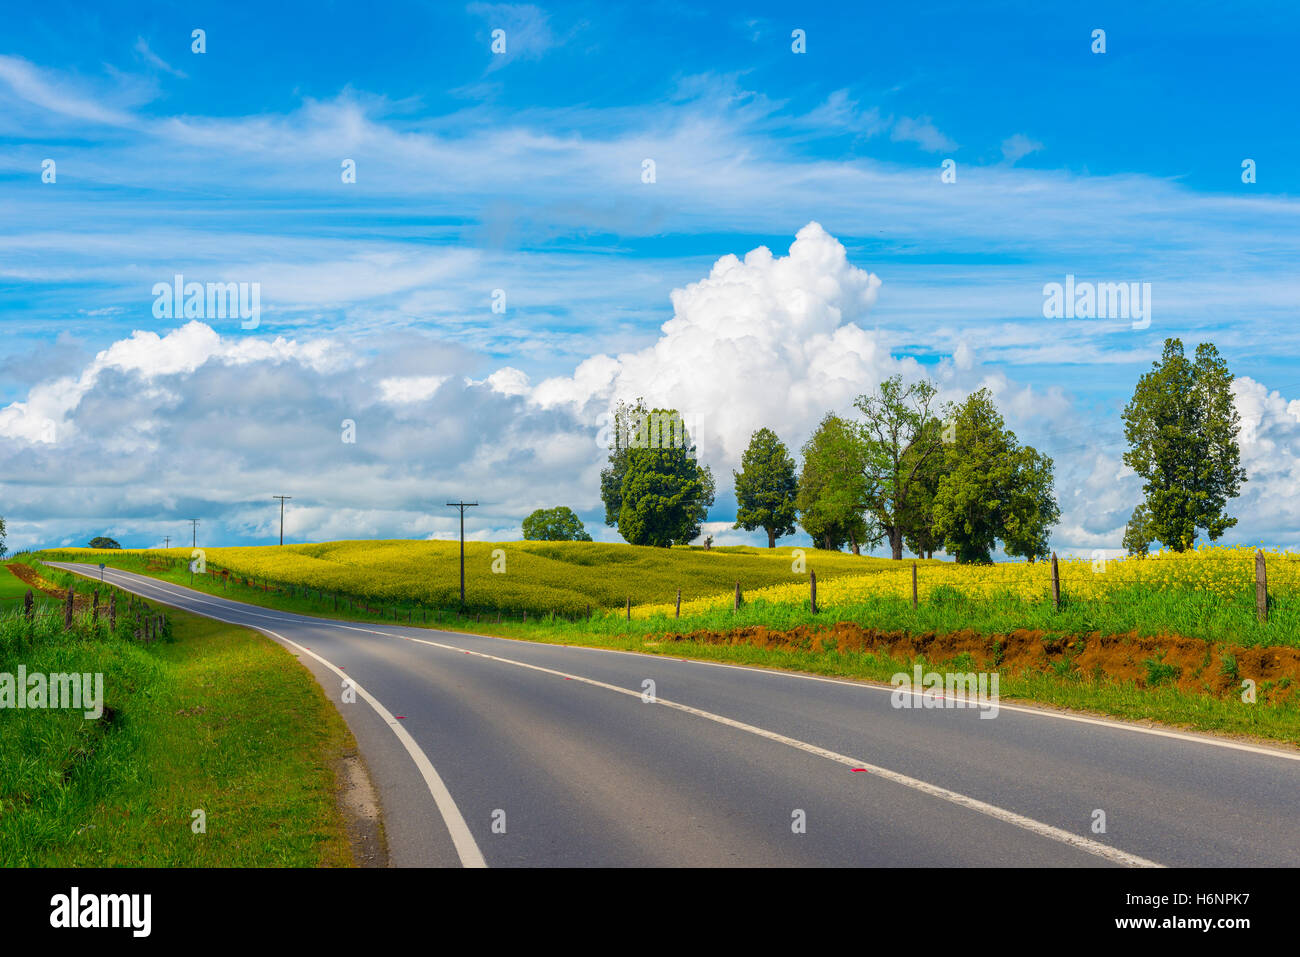 Planting of raps road - Stock Image